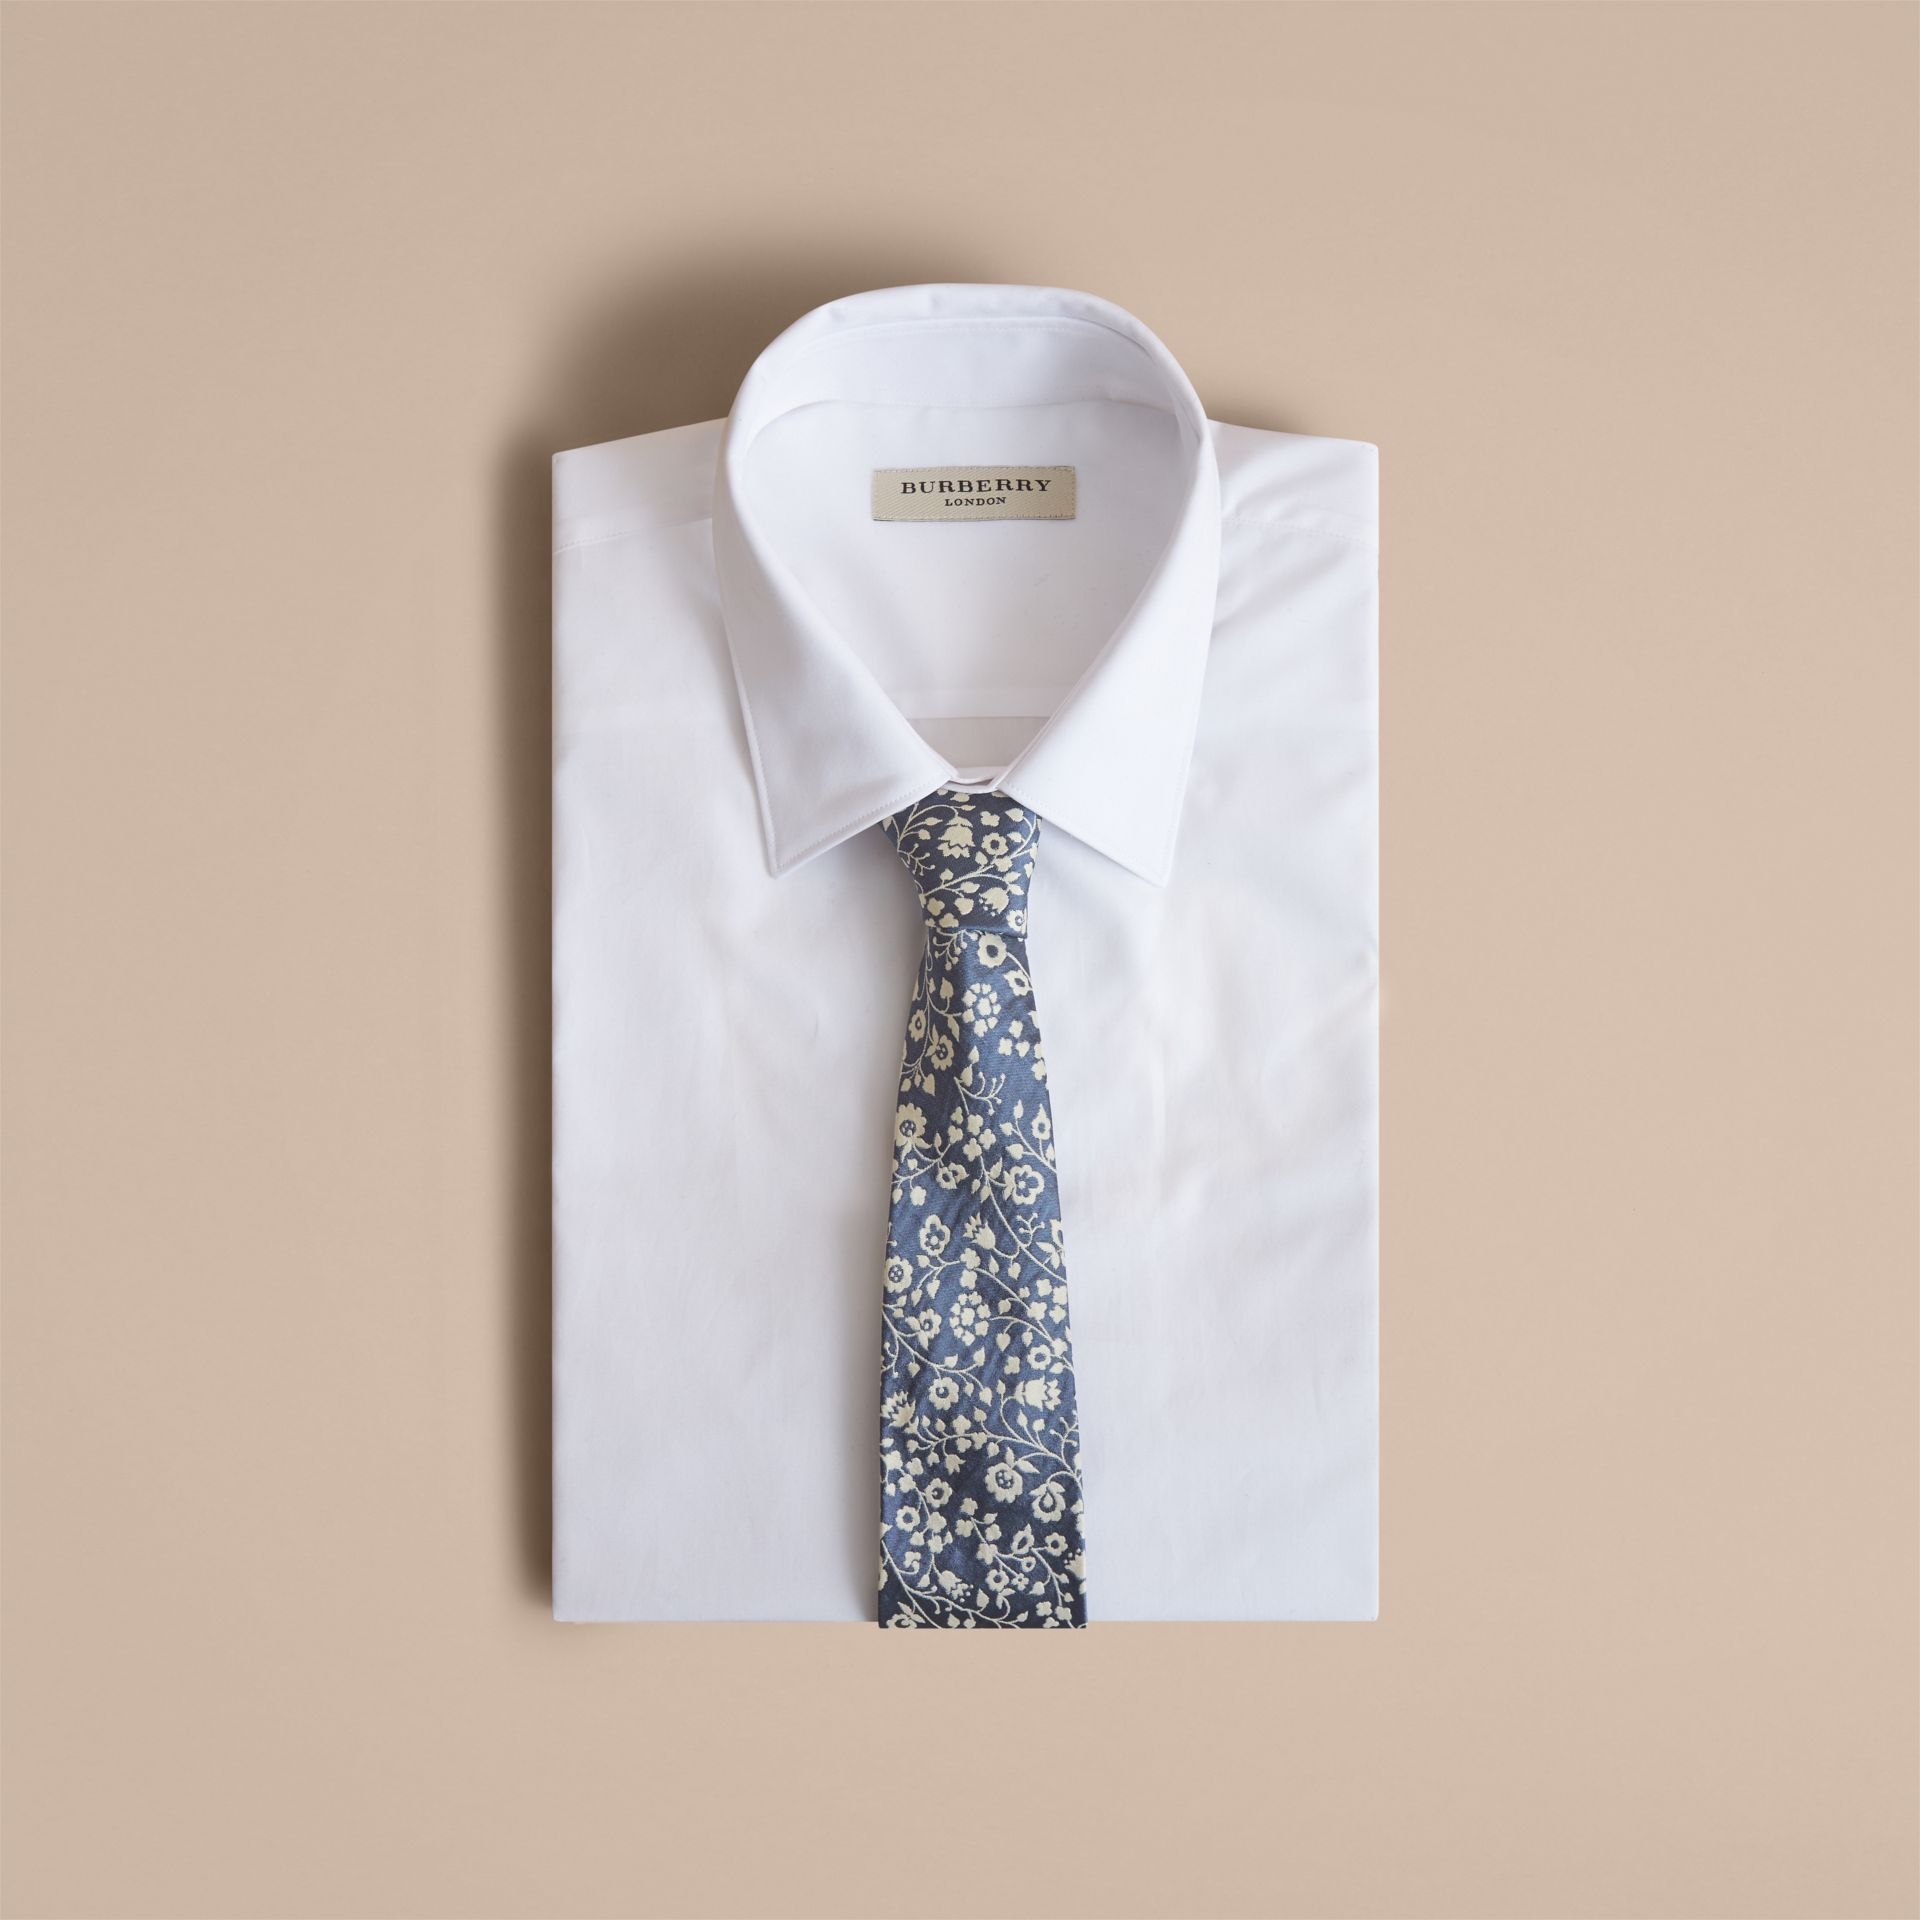 Modern Cut Floral Silk Jacquard Tie in Pale Blue - Men | Burberry - gallery image 4